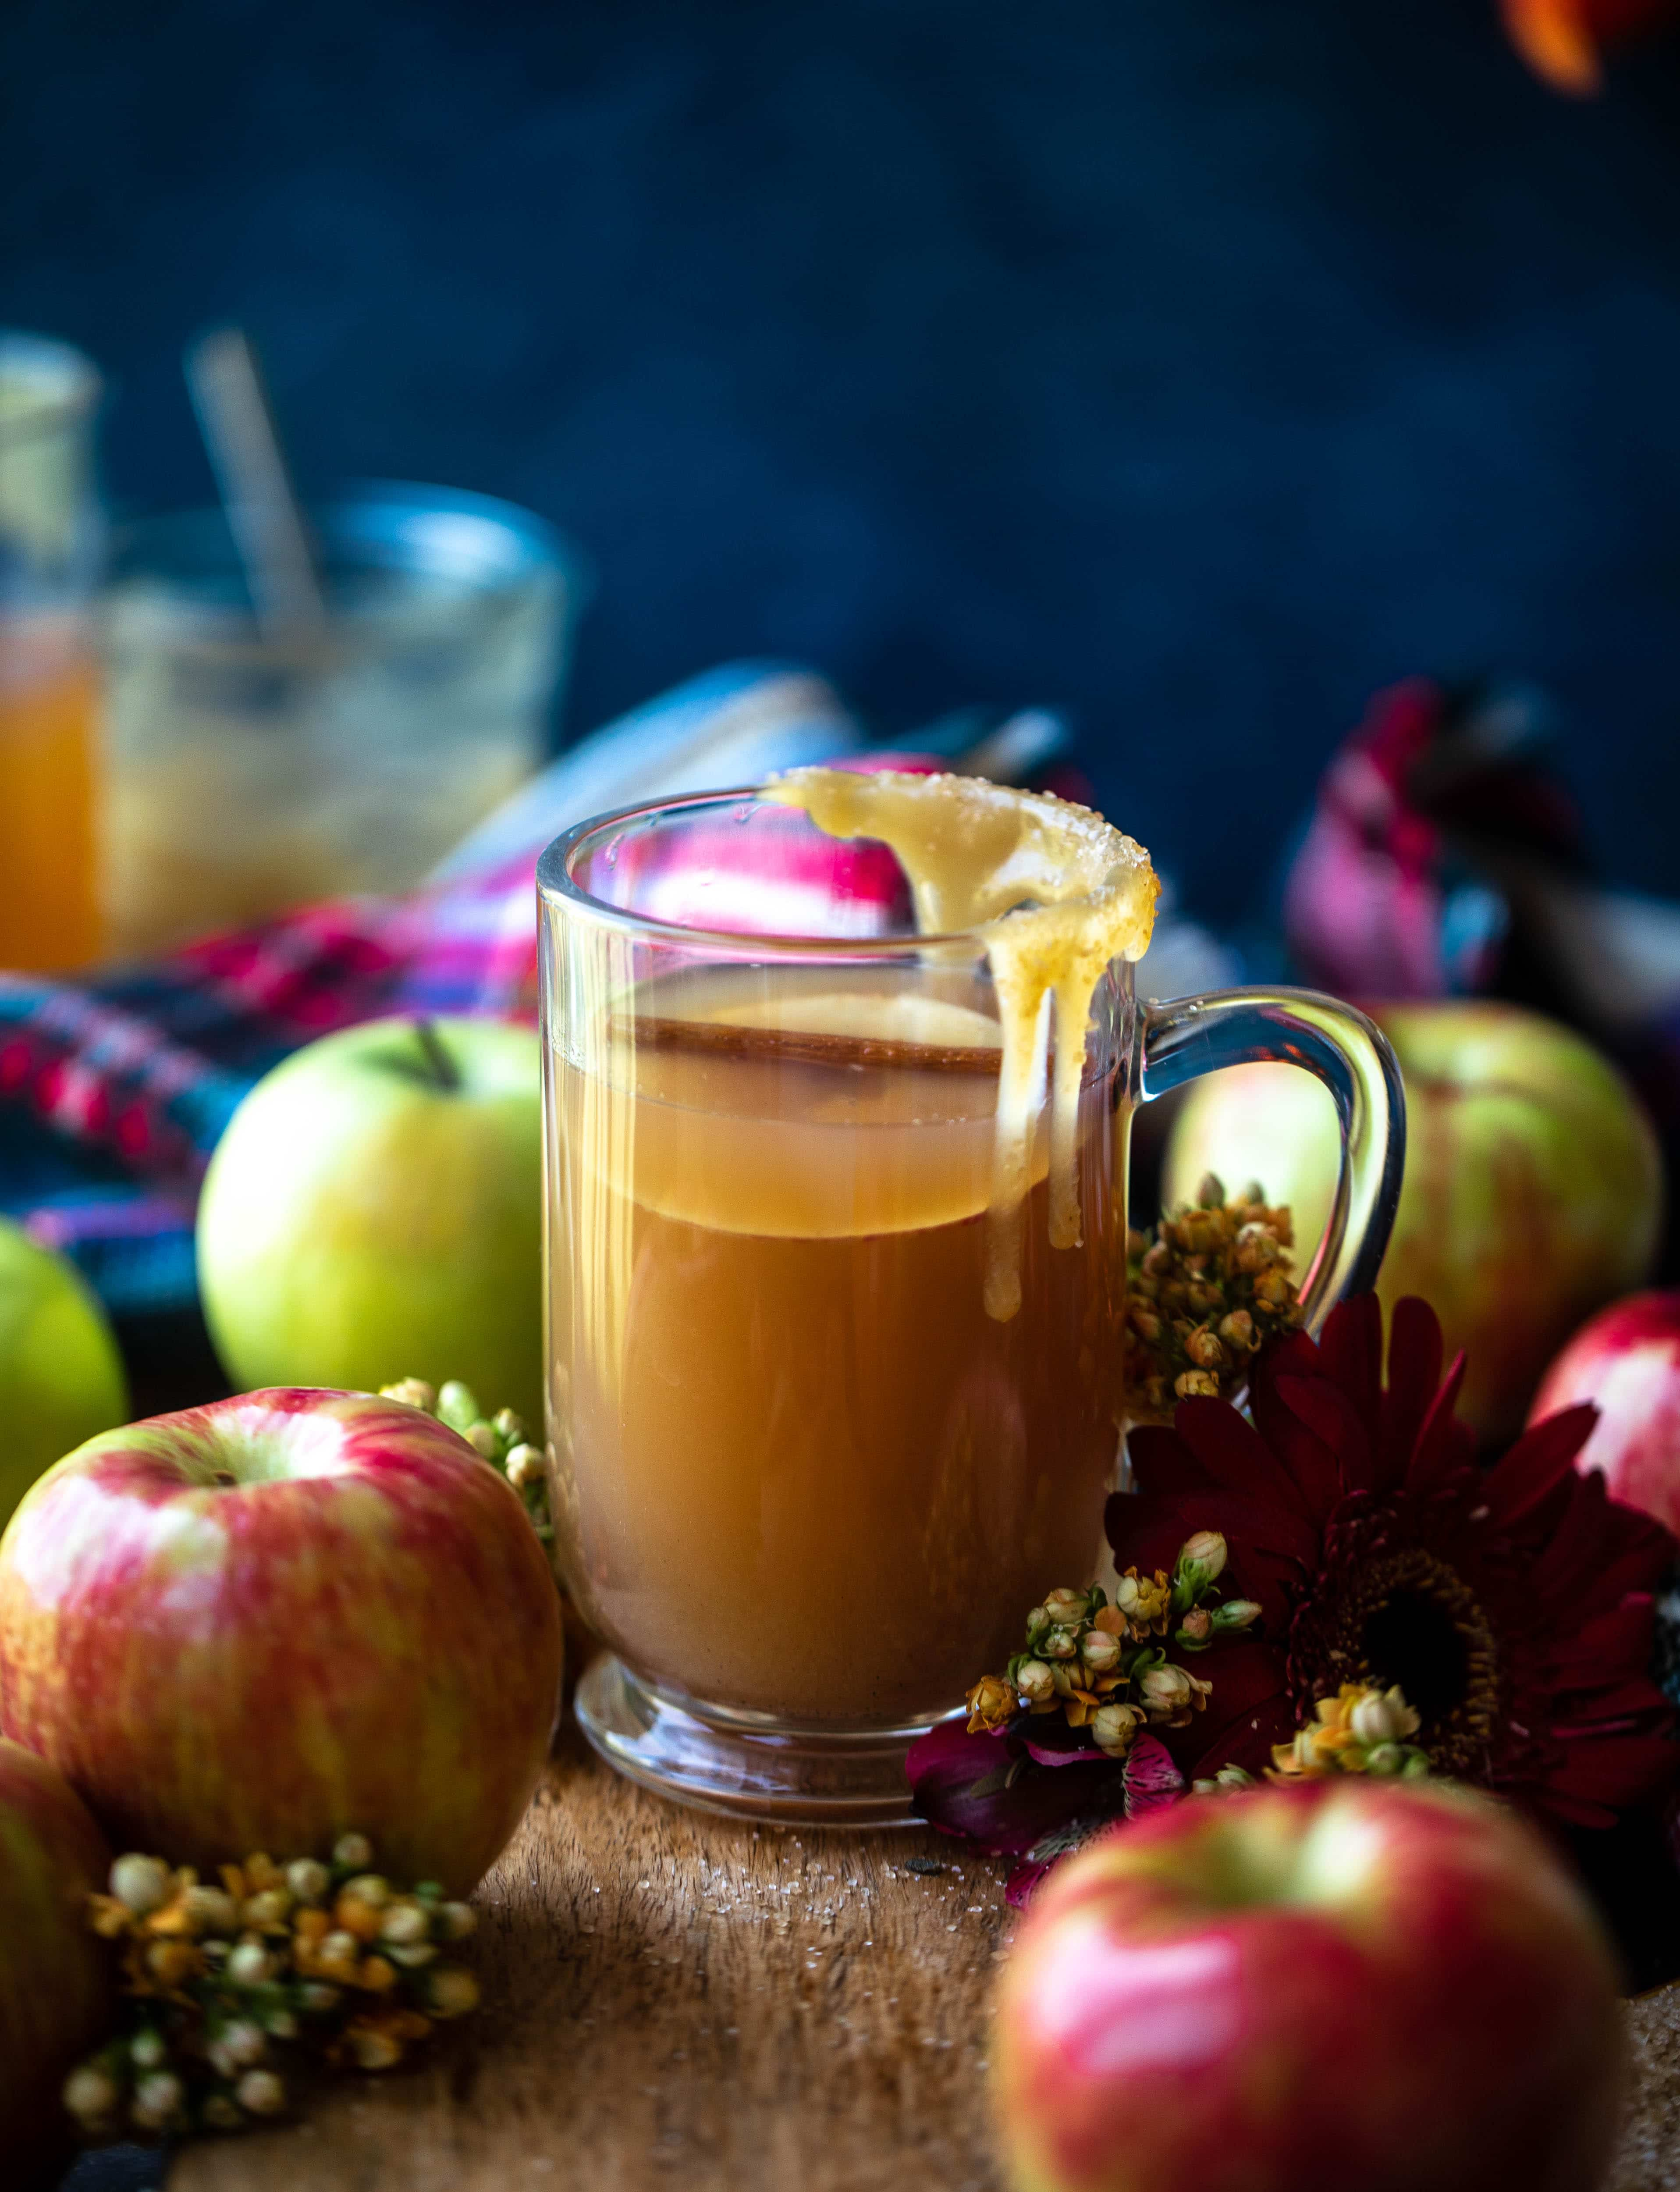 This homemade apple cider is made with honeycrisp apples, spices and vanilla. It's incredible served hot or cold, especially with a pour of bourbon!